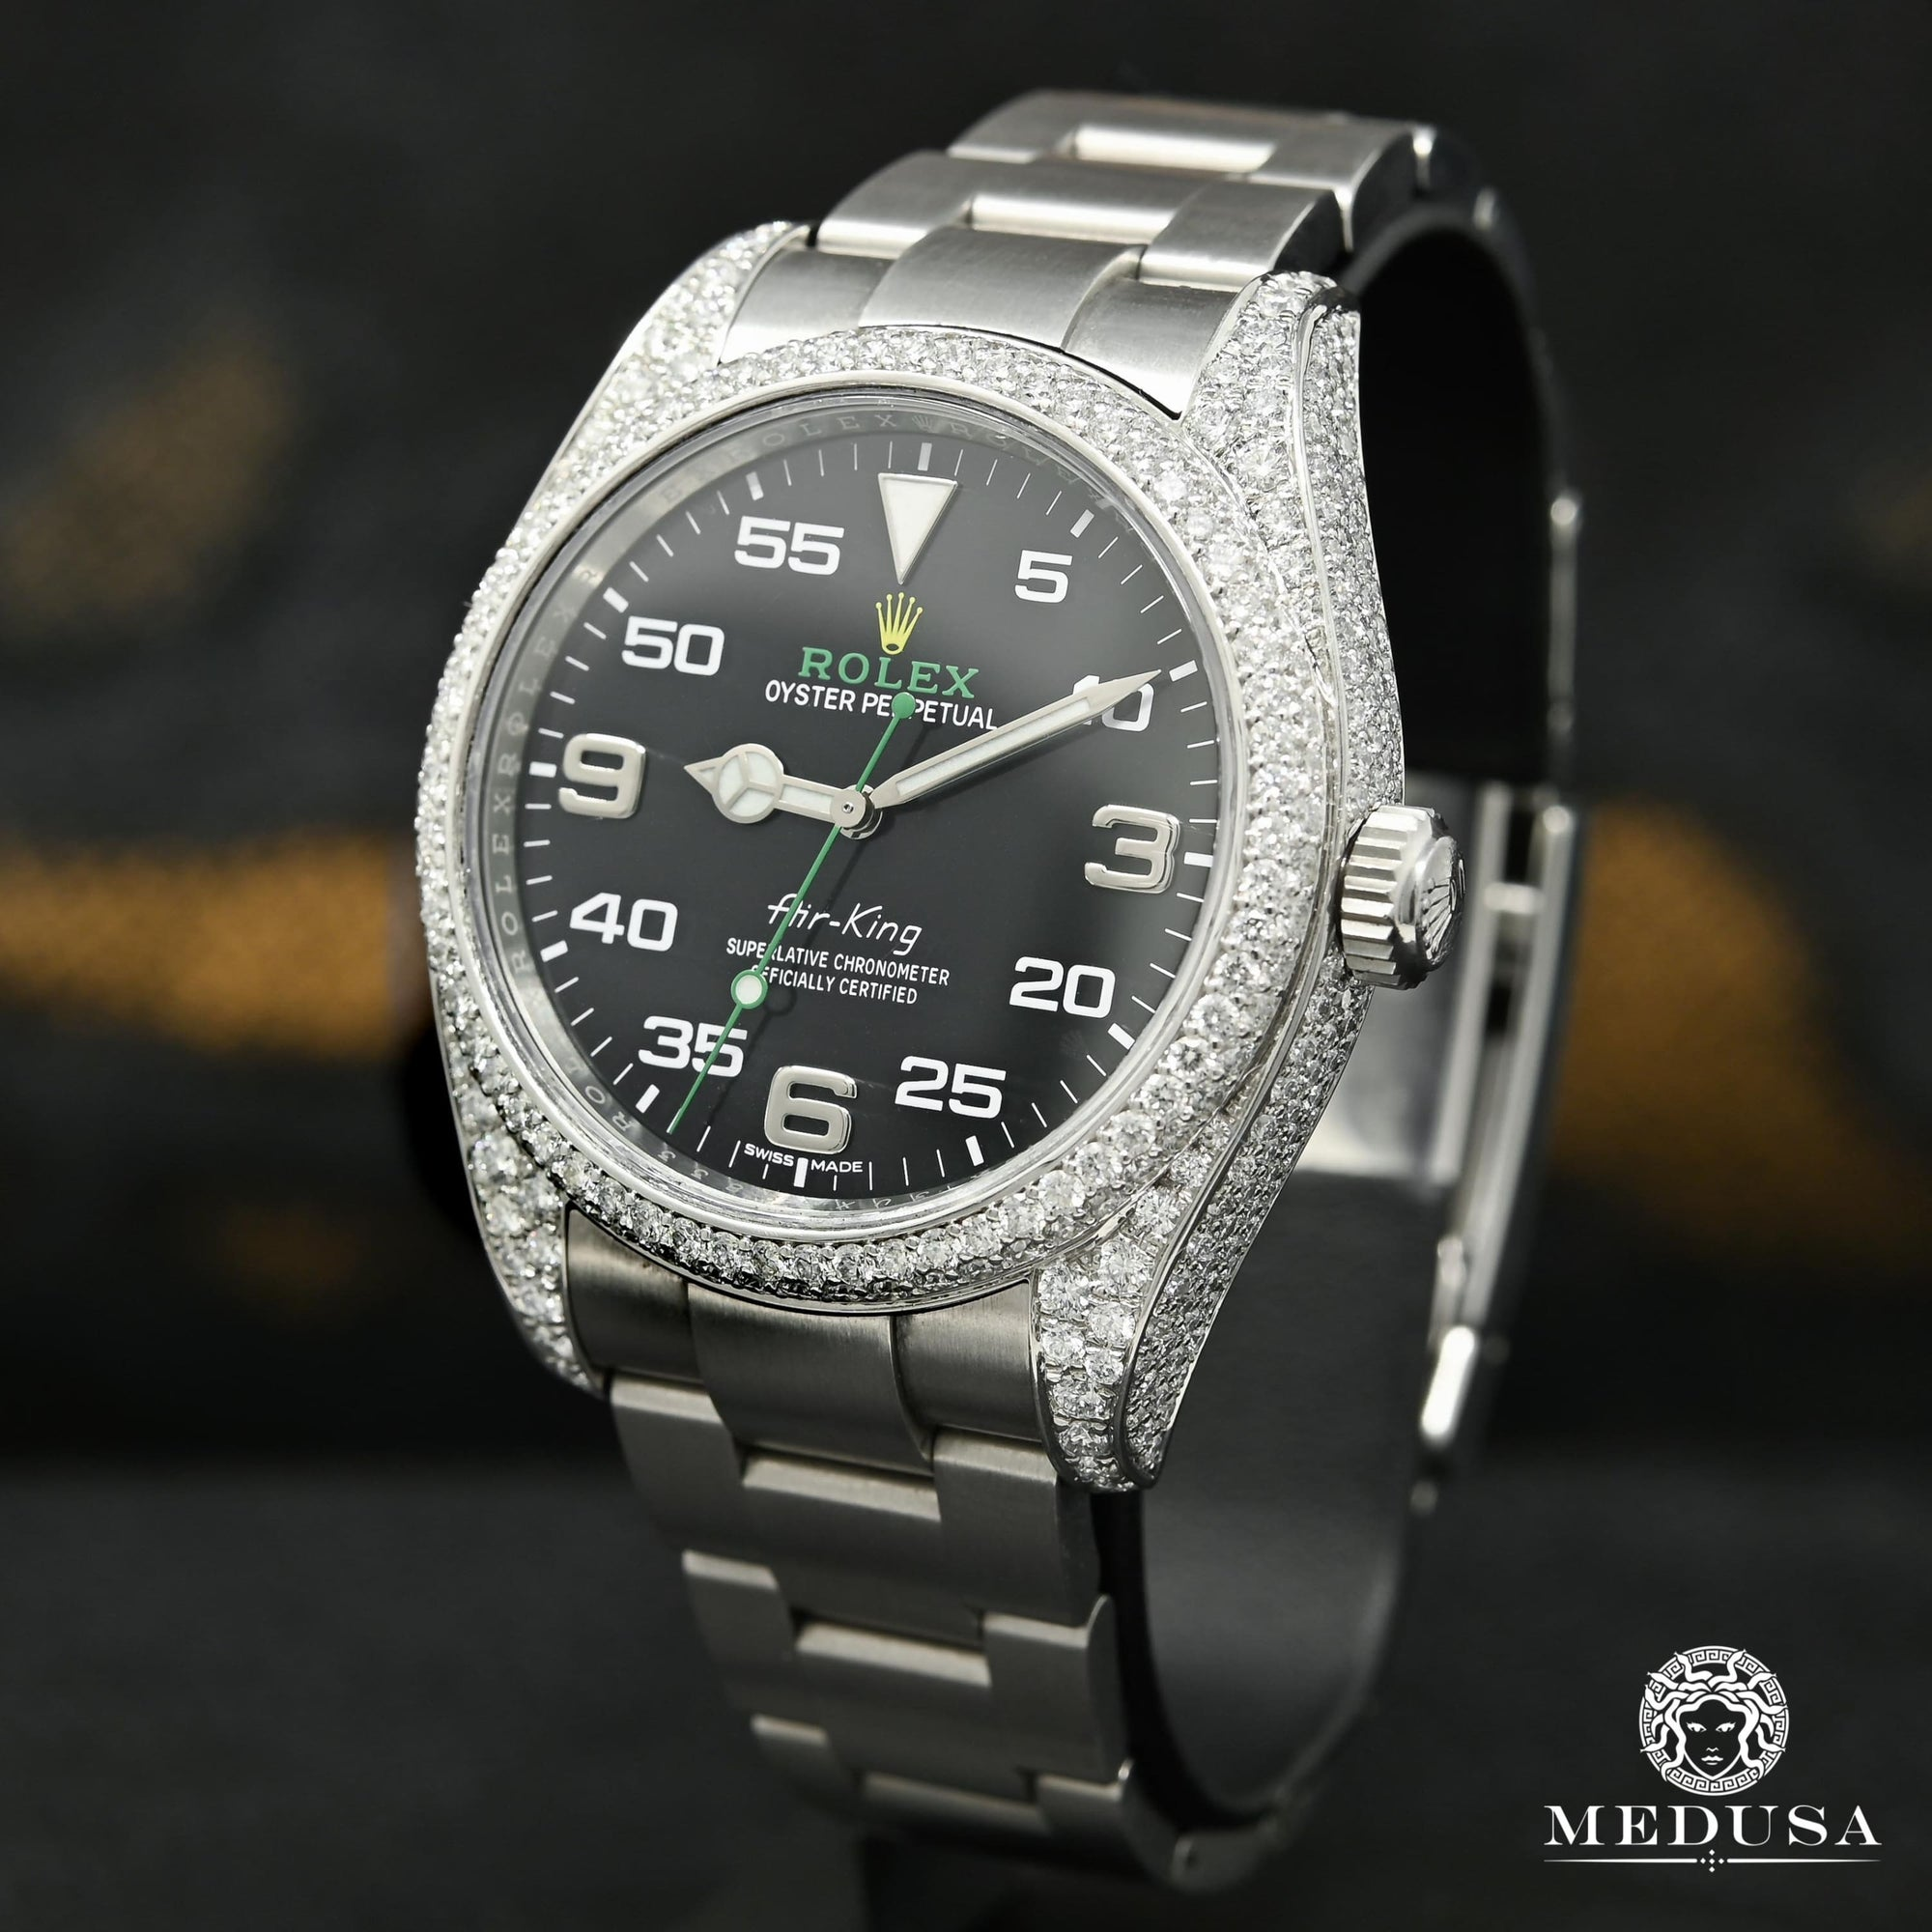 Montre Rolex | Montre Homme Rolex Air-King 40mm - Honeycomb Case Stainless